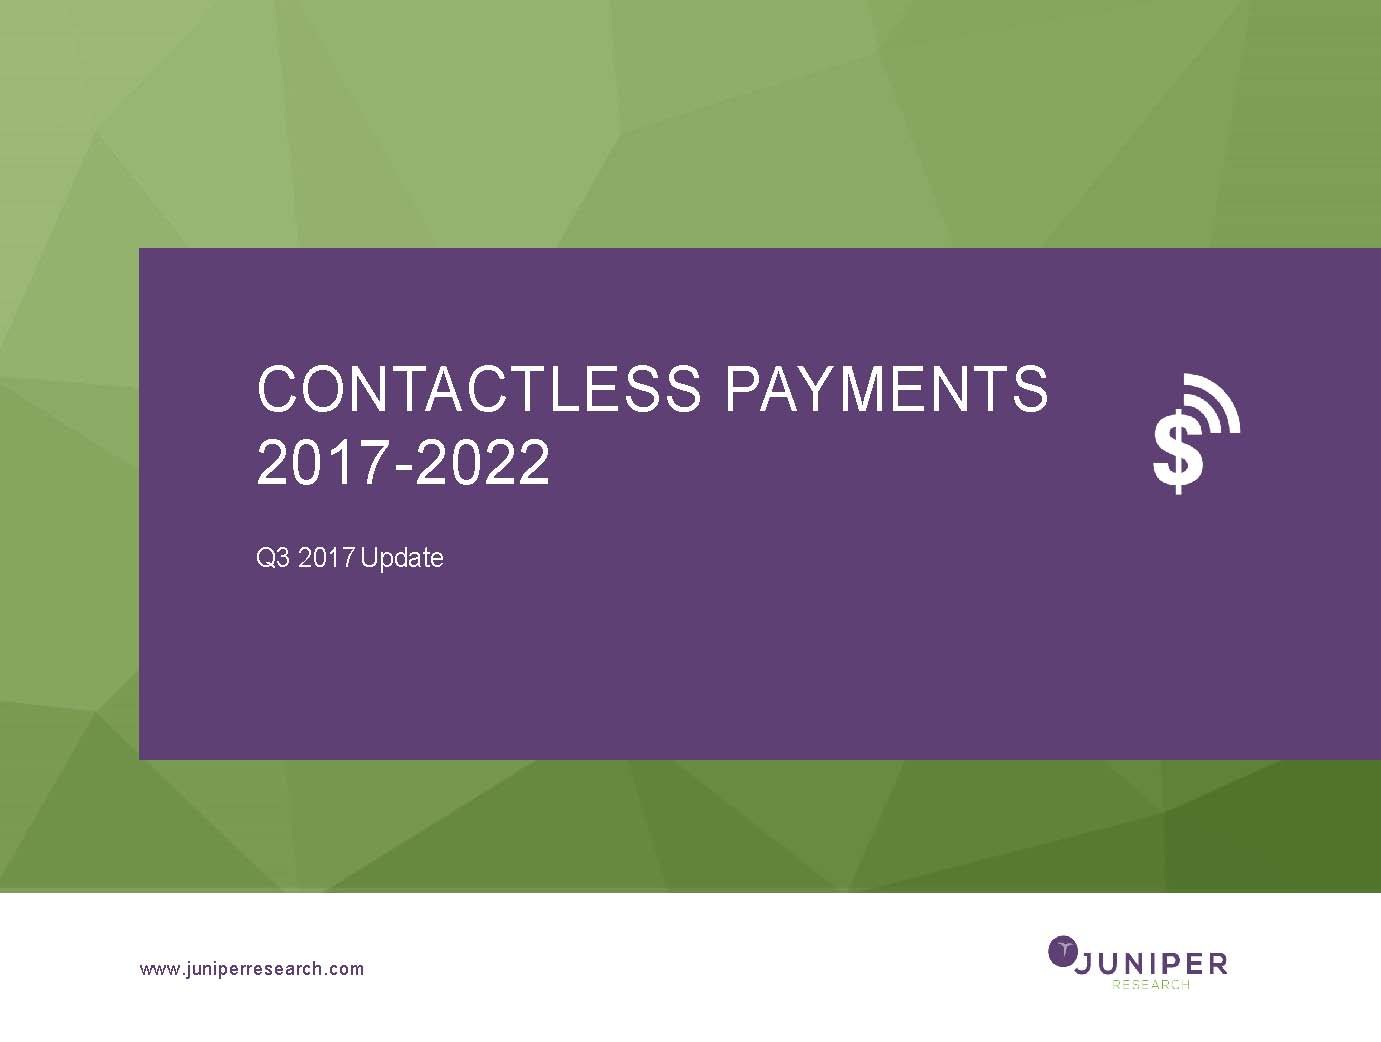 Contactless Payments - Q3 2017